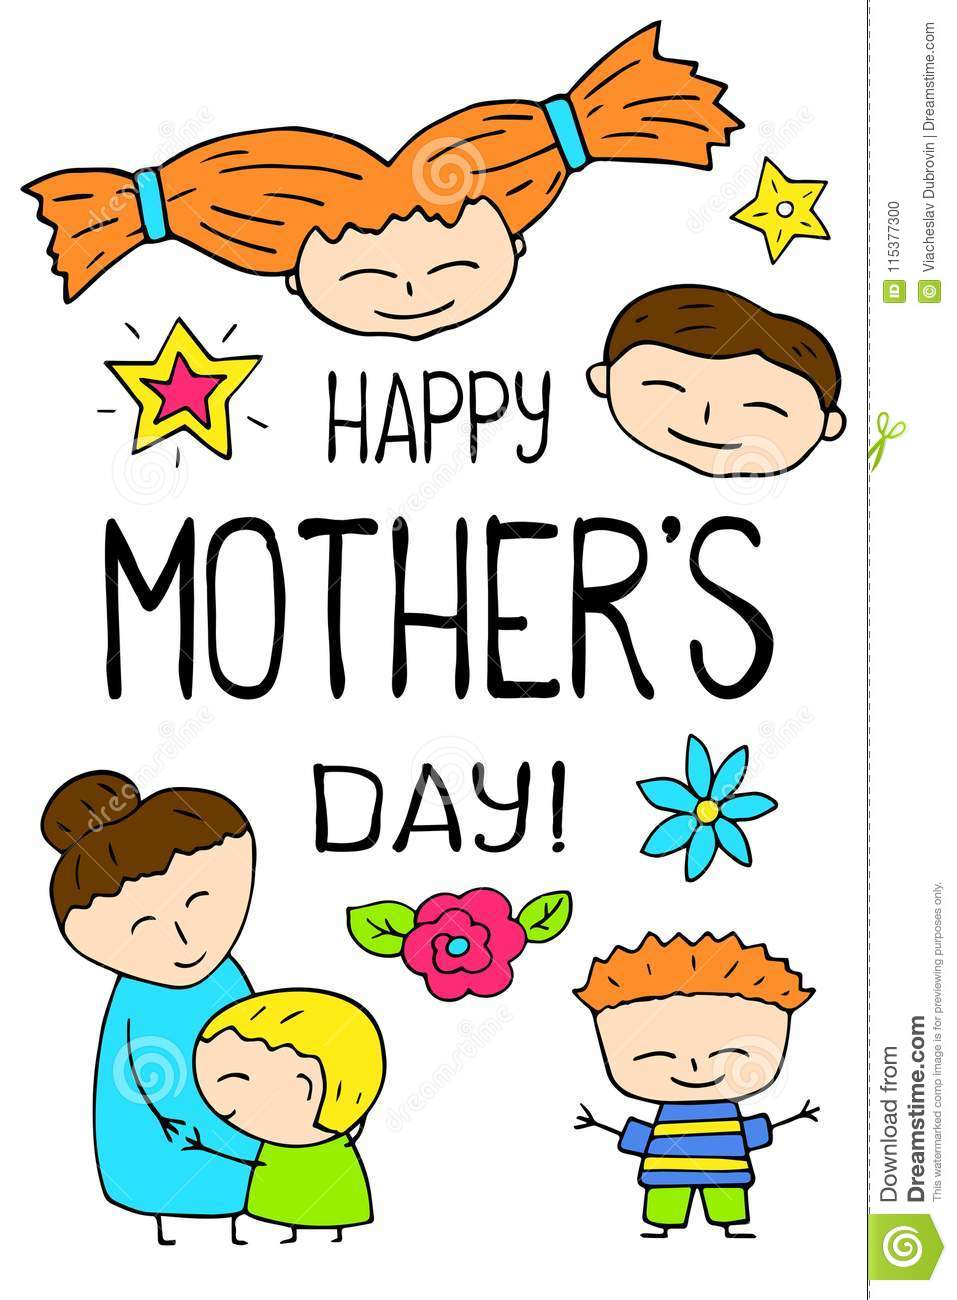 Happy Mothers Day Postcard On White Background Mother Greeting Card Mom And Son Hugs In Freehand Style